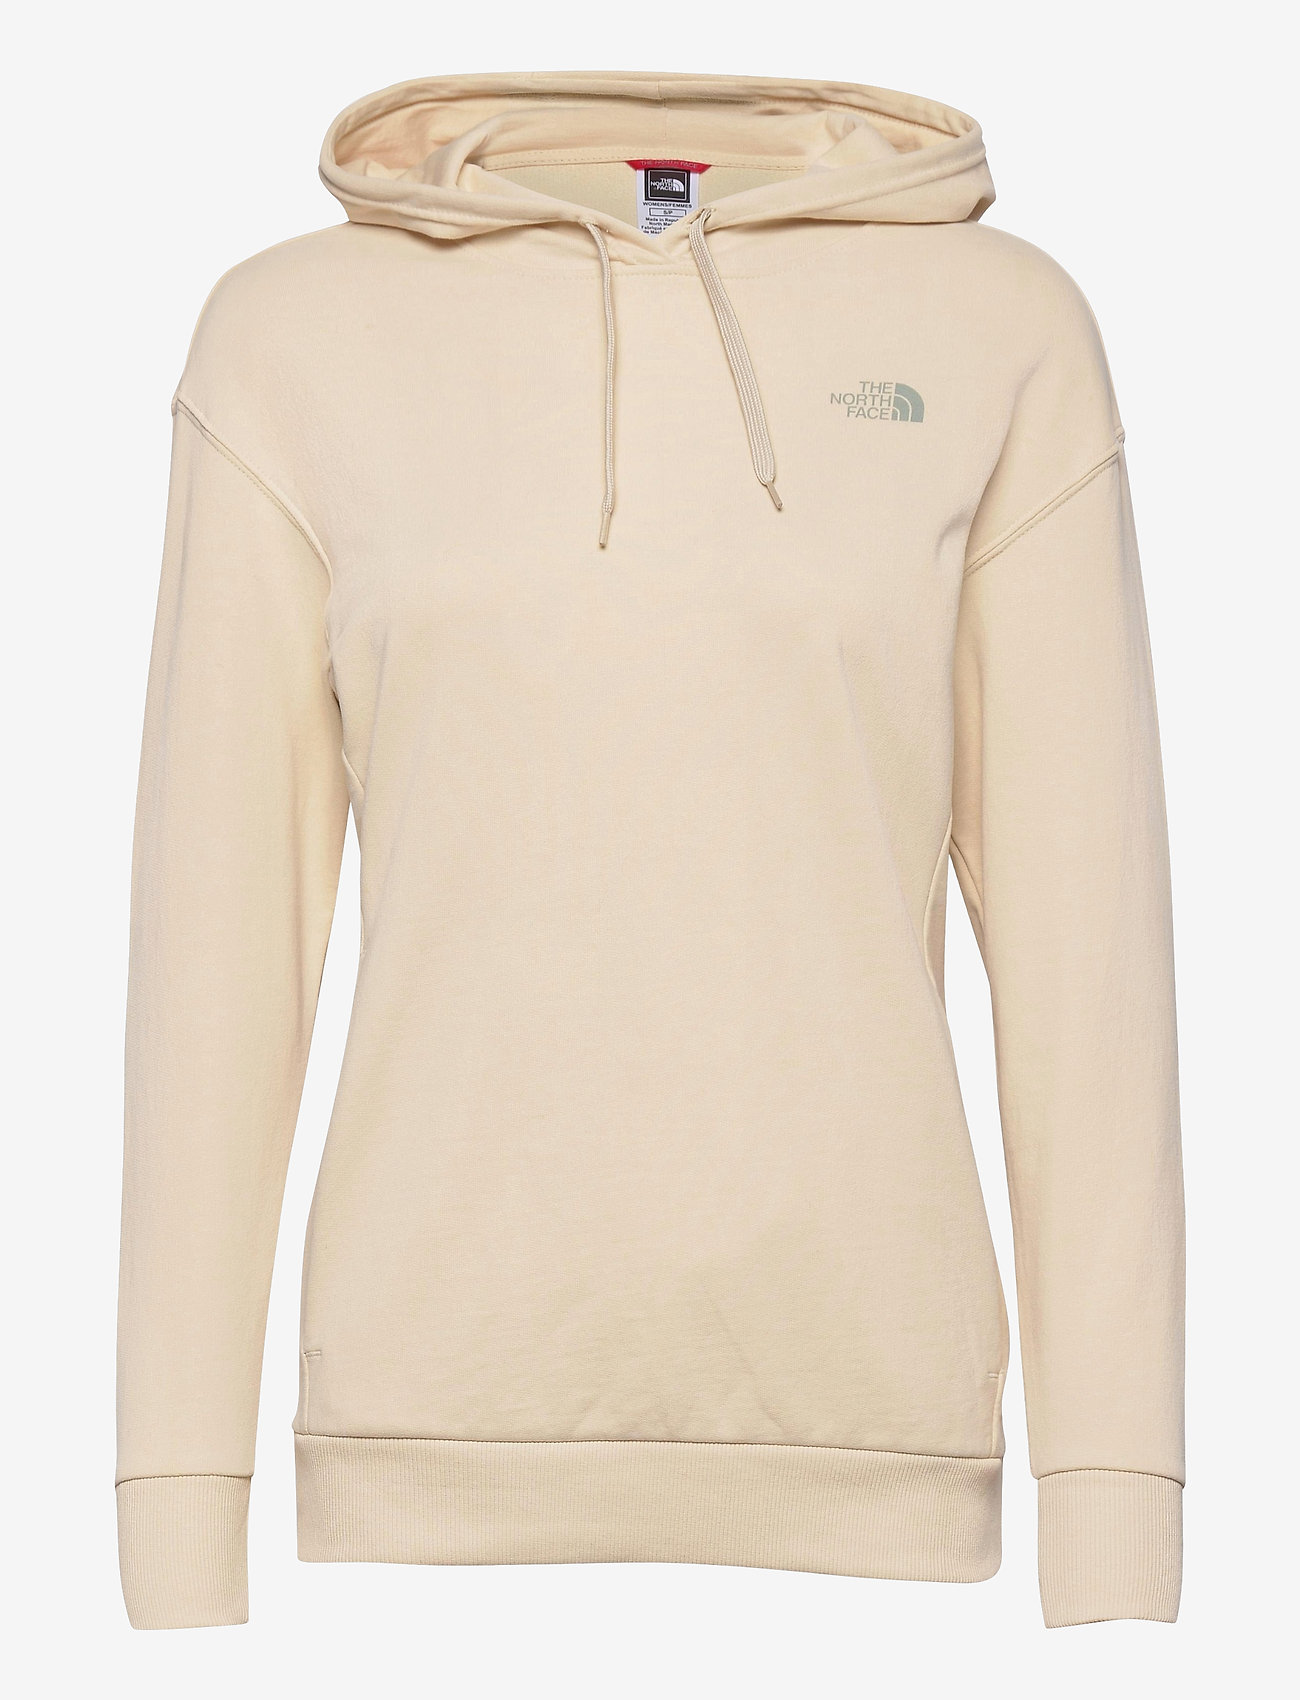 The North Face - W PUD HOODIE - hættetrøjer - bleached sand - 0